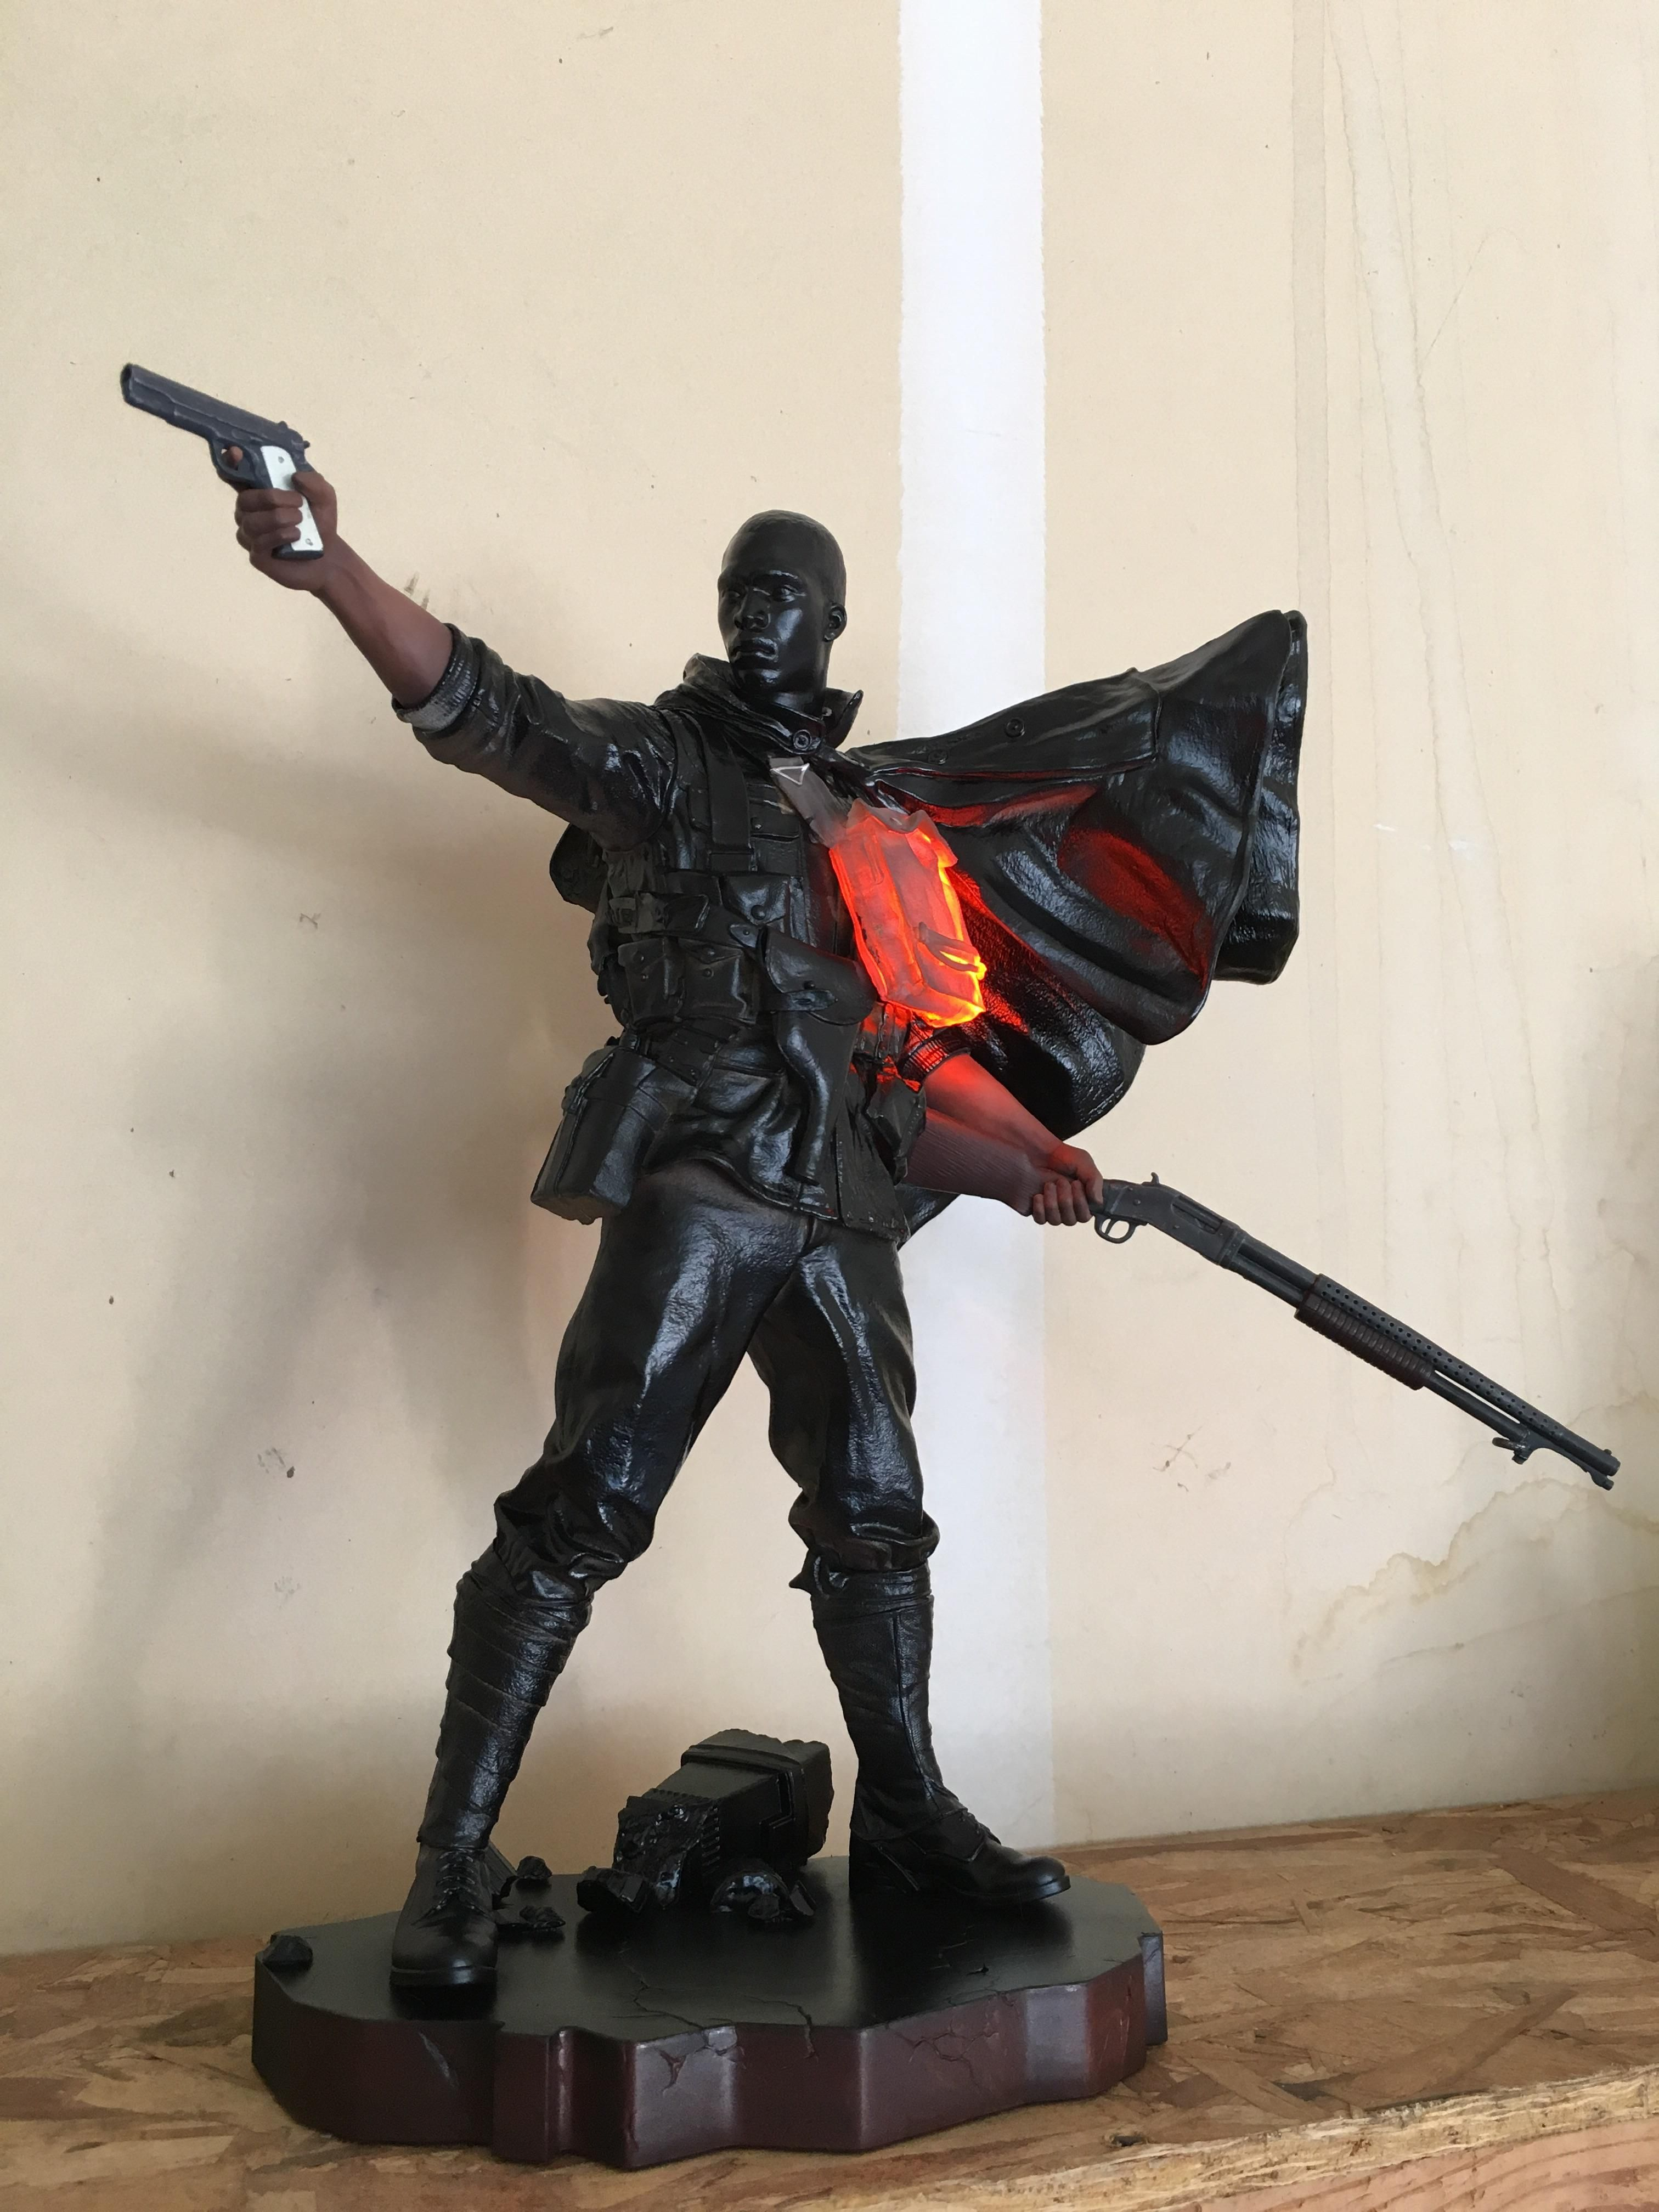 The Battlefield 1 Collector S Edition Statue I Really Disliked